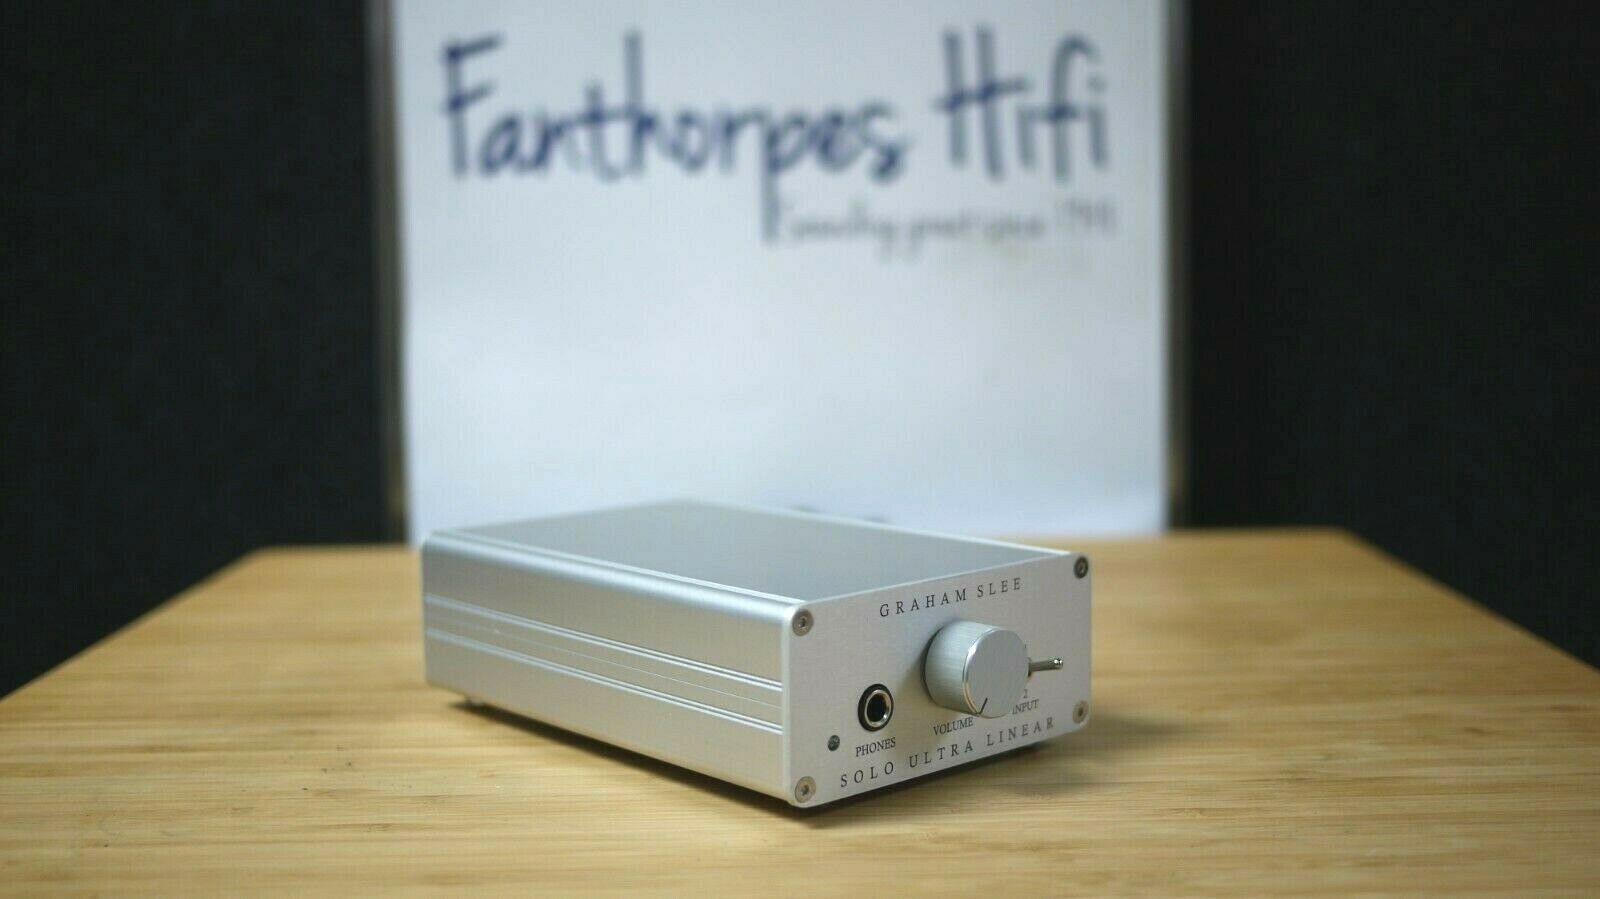 Picture of Graham Slee Solo Ultra Linear Headphone Amplifier